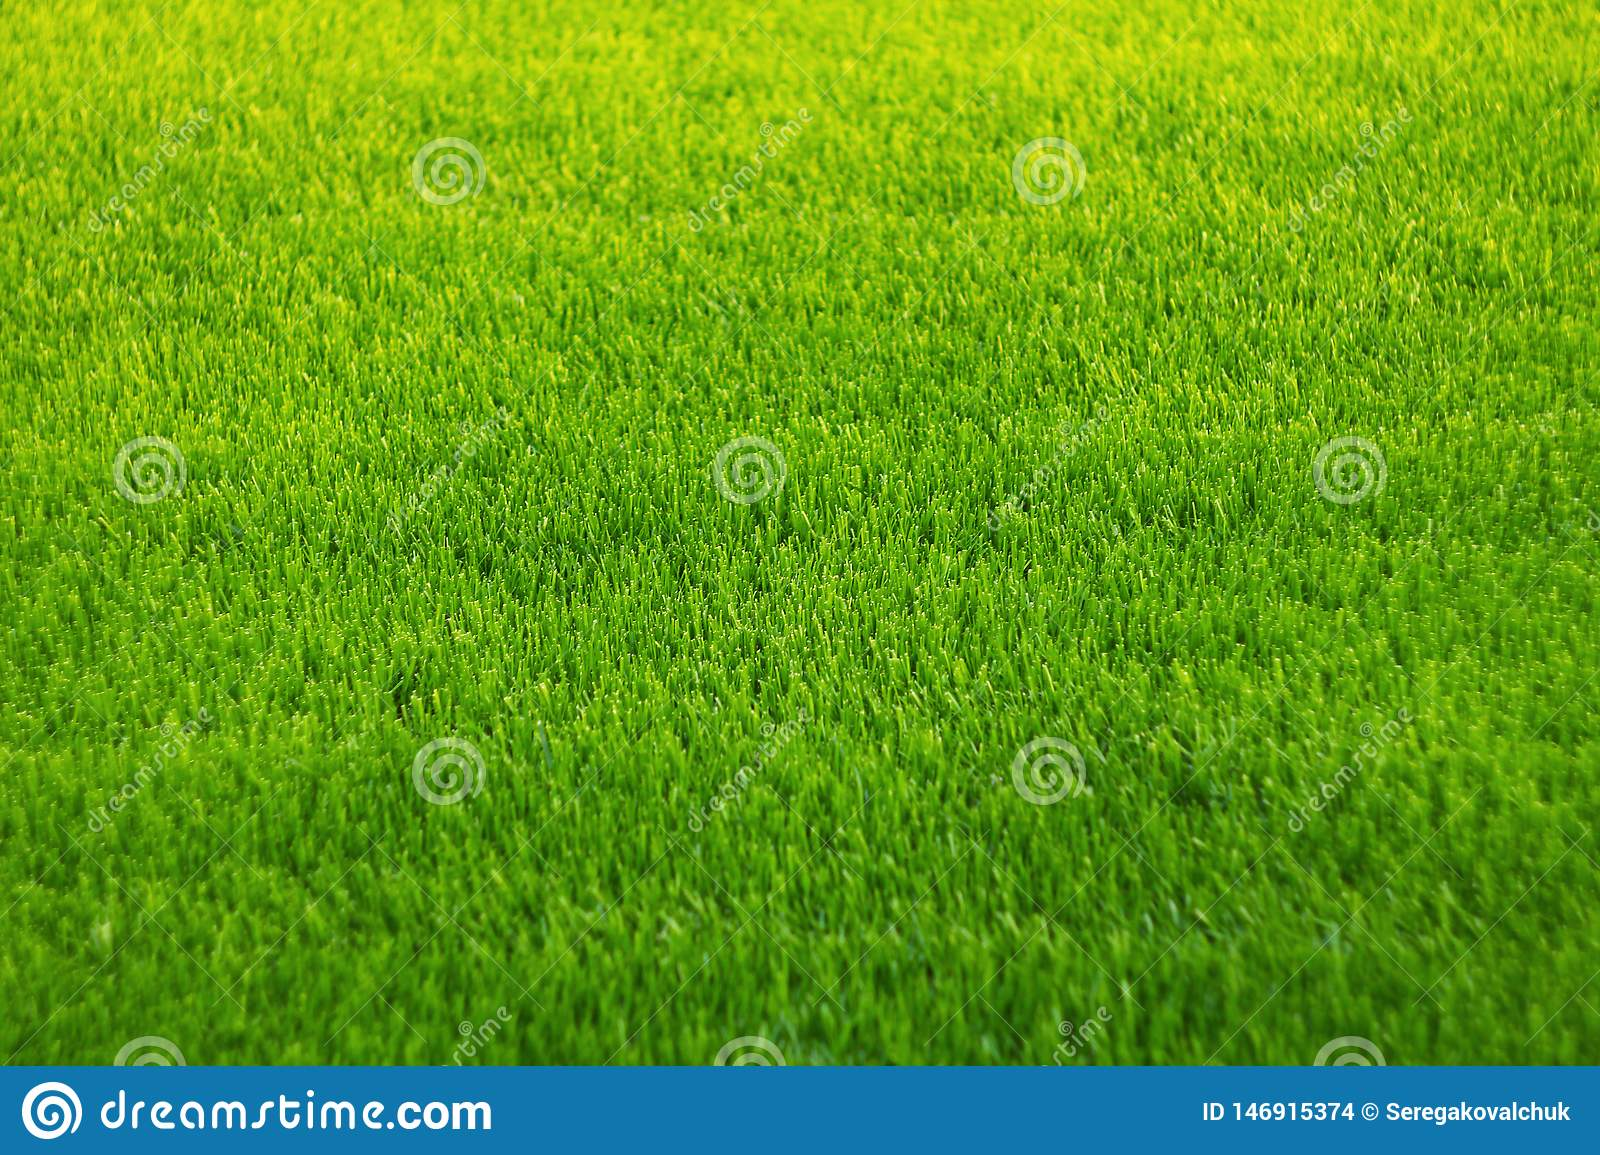 Background of green grass. Amazing grass texture. Green background.Park lawn texture